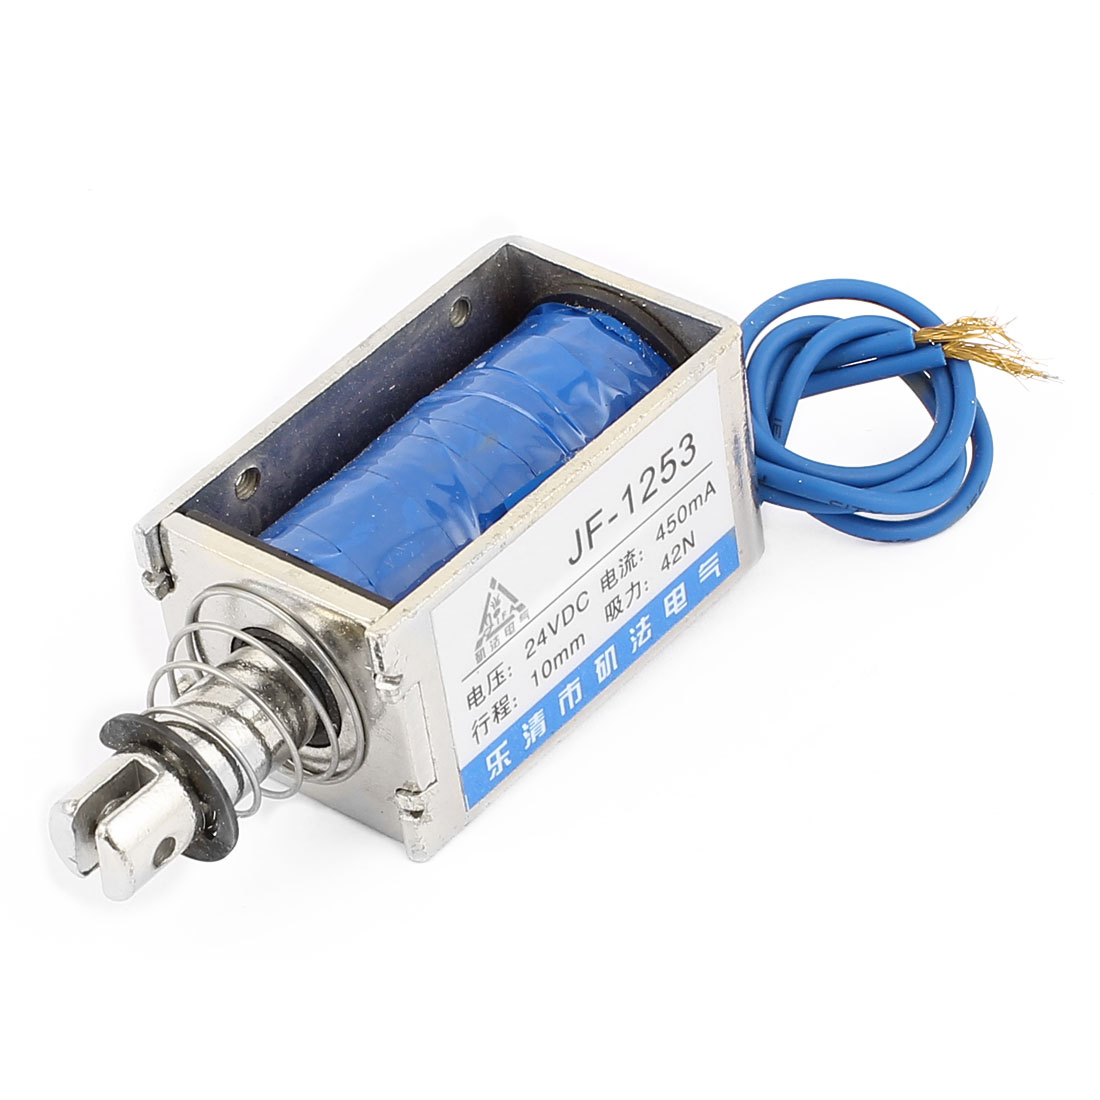 JF-1253 DC24V 42N Force 10mm Actuator 2-Wires Pull Push Open Frame Linear Motion Solenoid Electromagnet